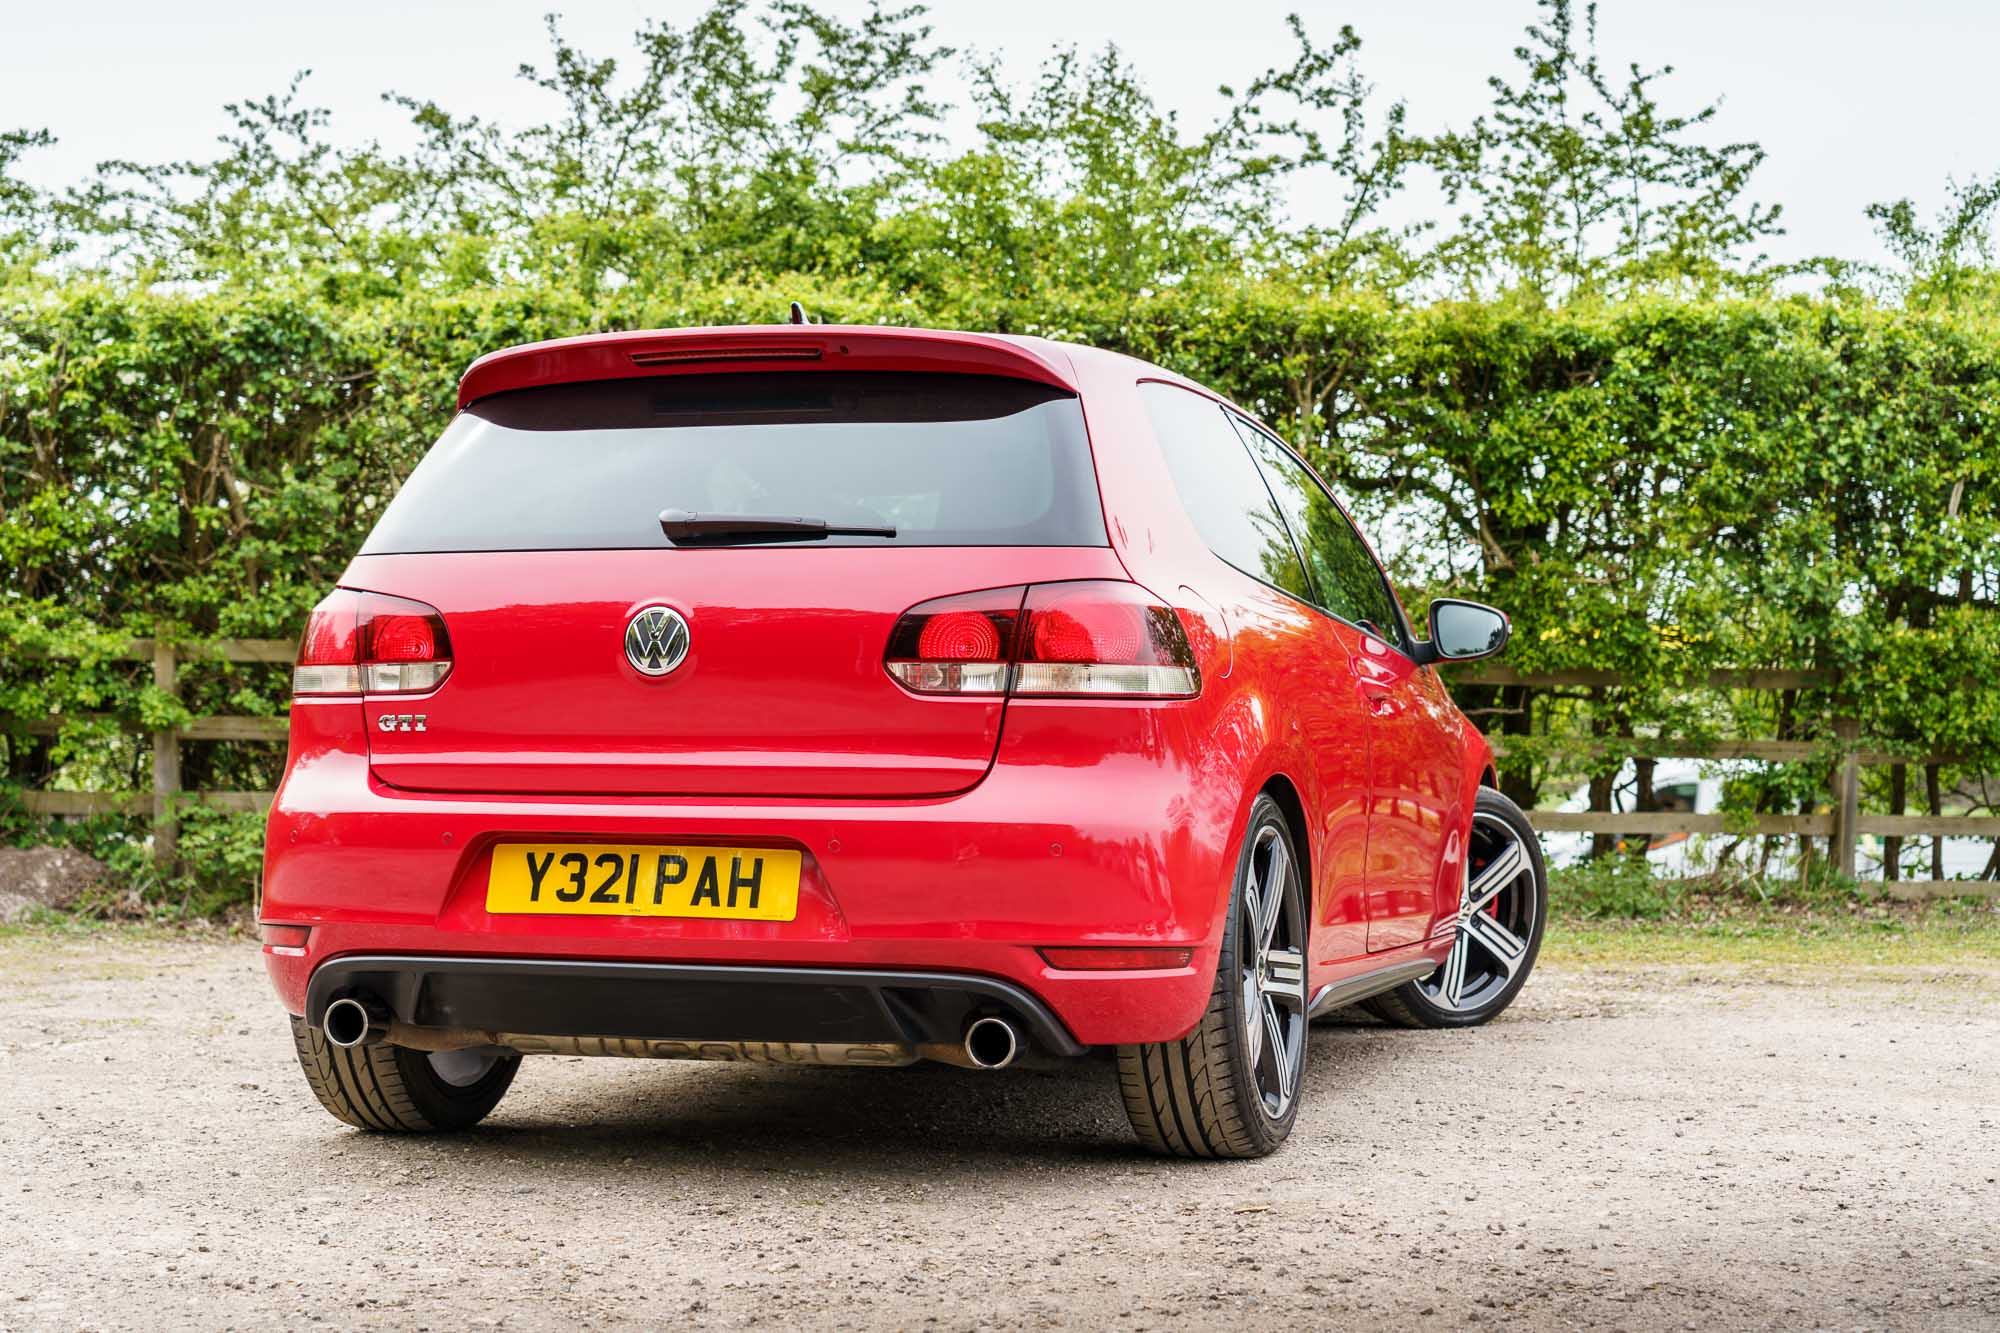 Vw Golf Gti Mk6 Review Does It Stand The Test Of Time